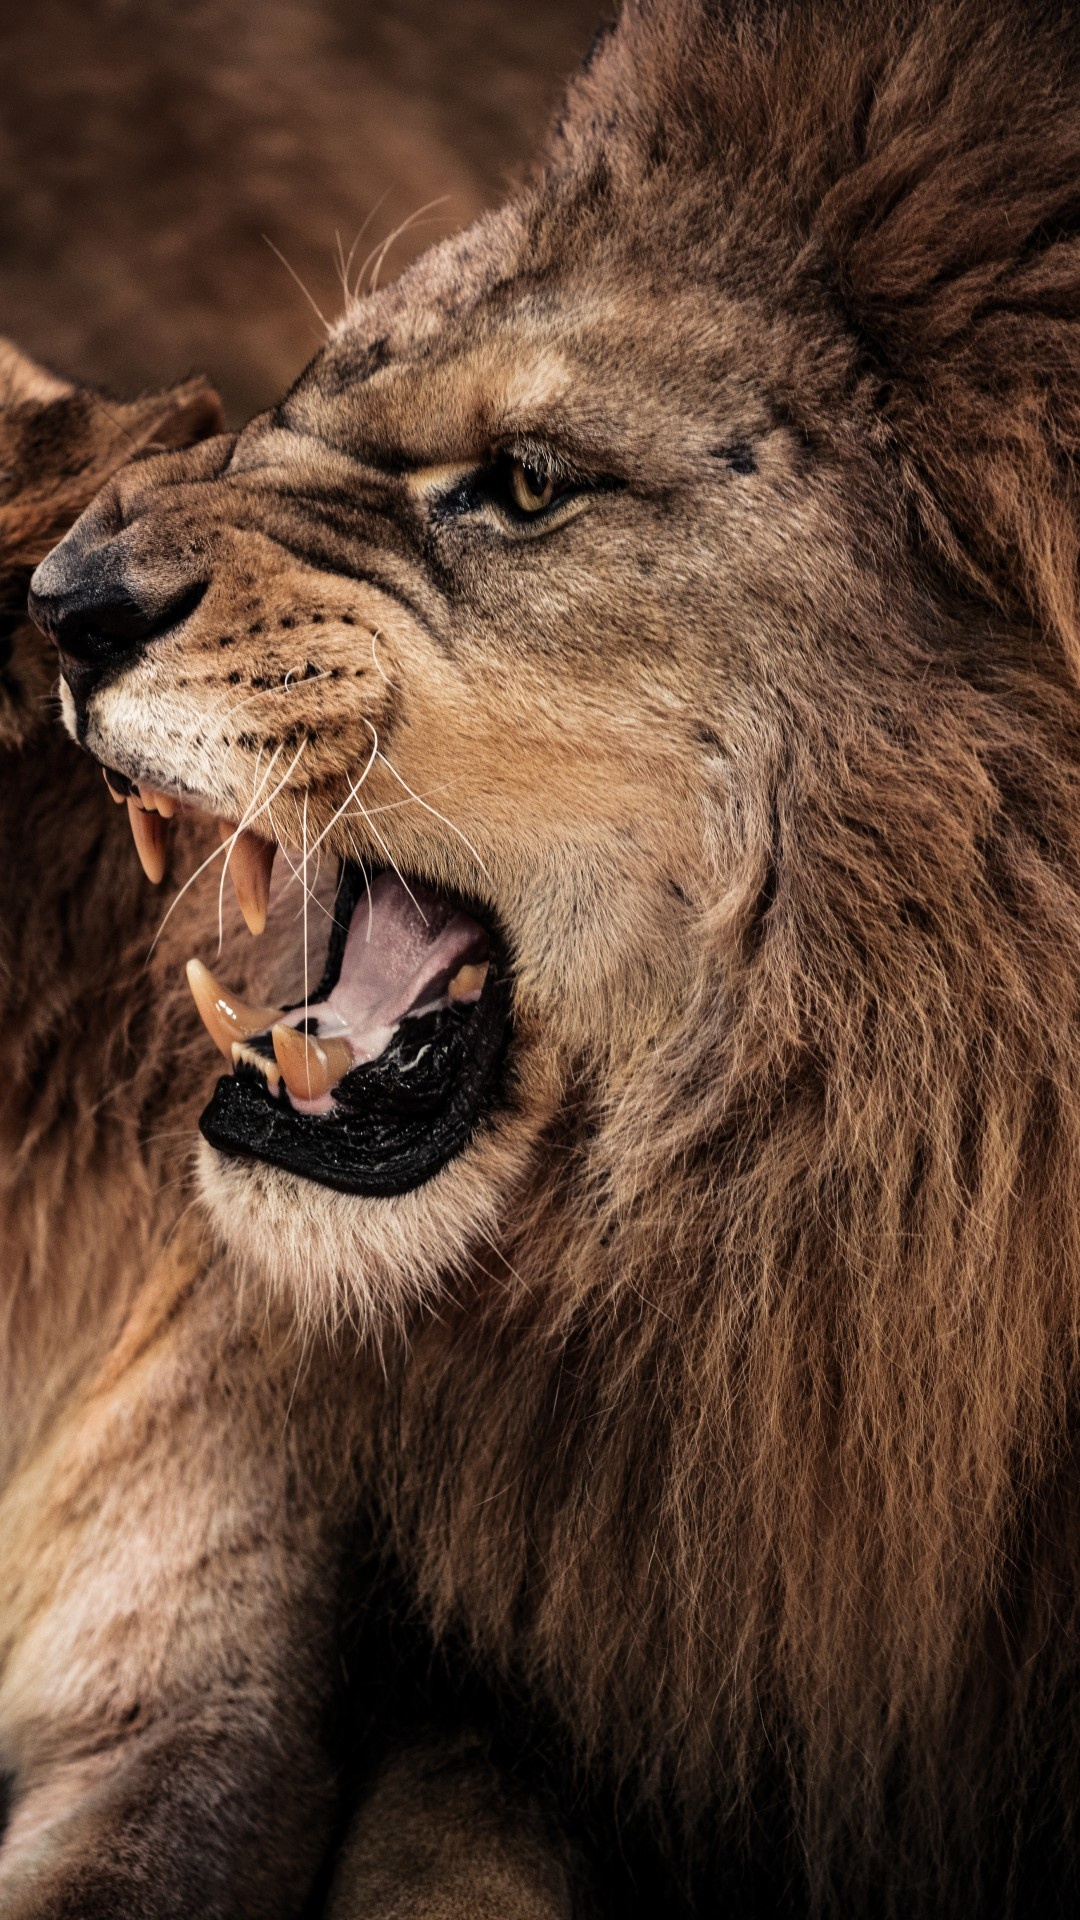 Angry Lion Growing Wallpapers - 1080x1920 - 875339